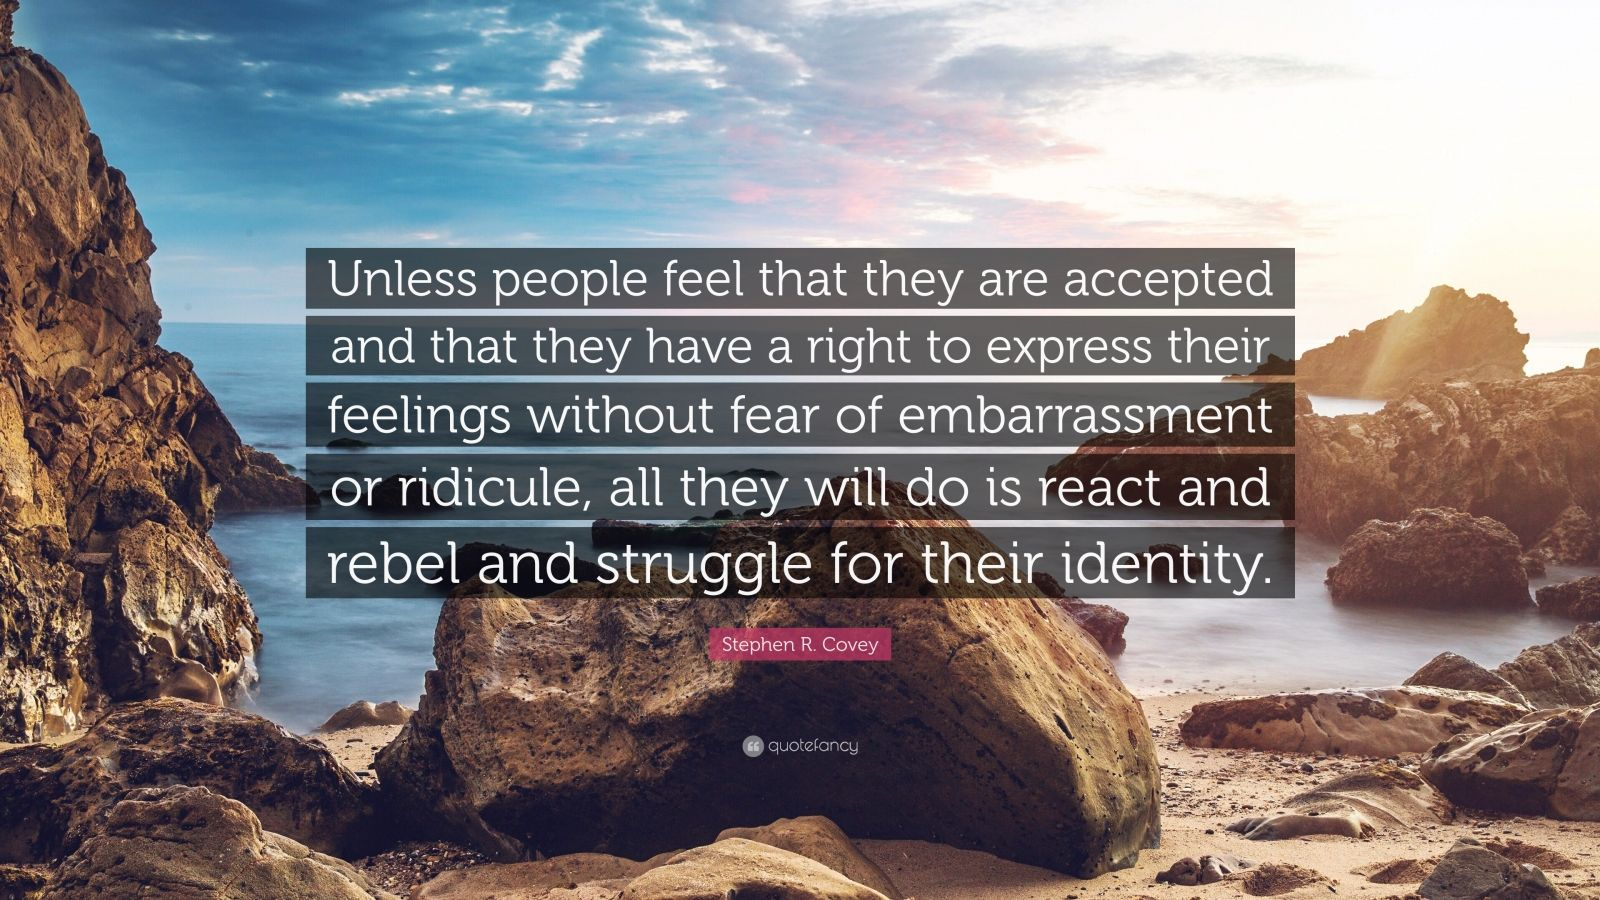 """Stephen R. Covey Quote: """"Unless people feel that they are accepted and that they have a right to express their feelings without fear of embarrassment or ridicule, all they will do is react and rebel and struggle for their identity."""""""